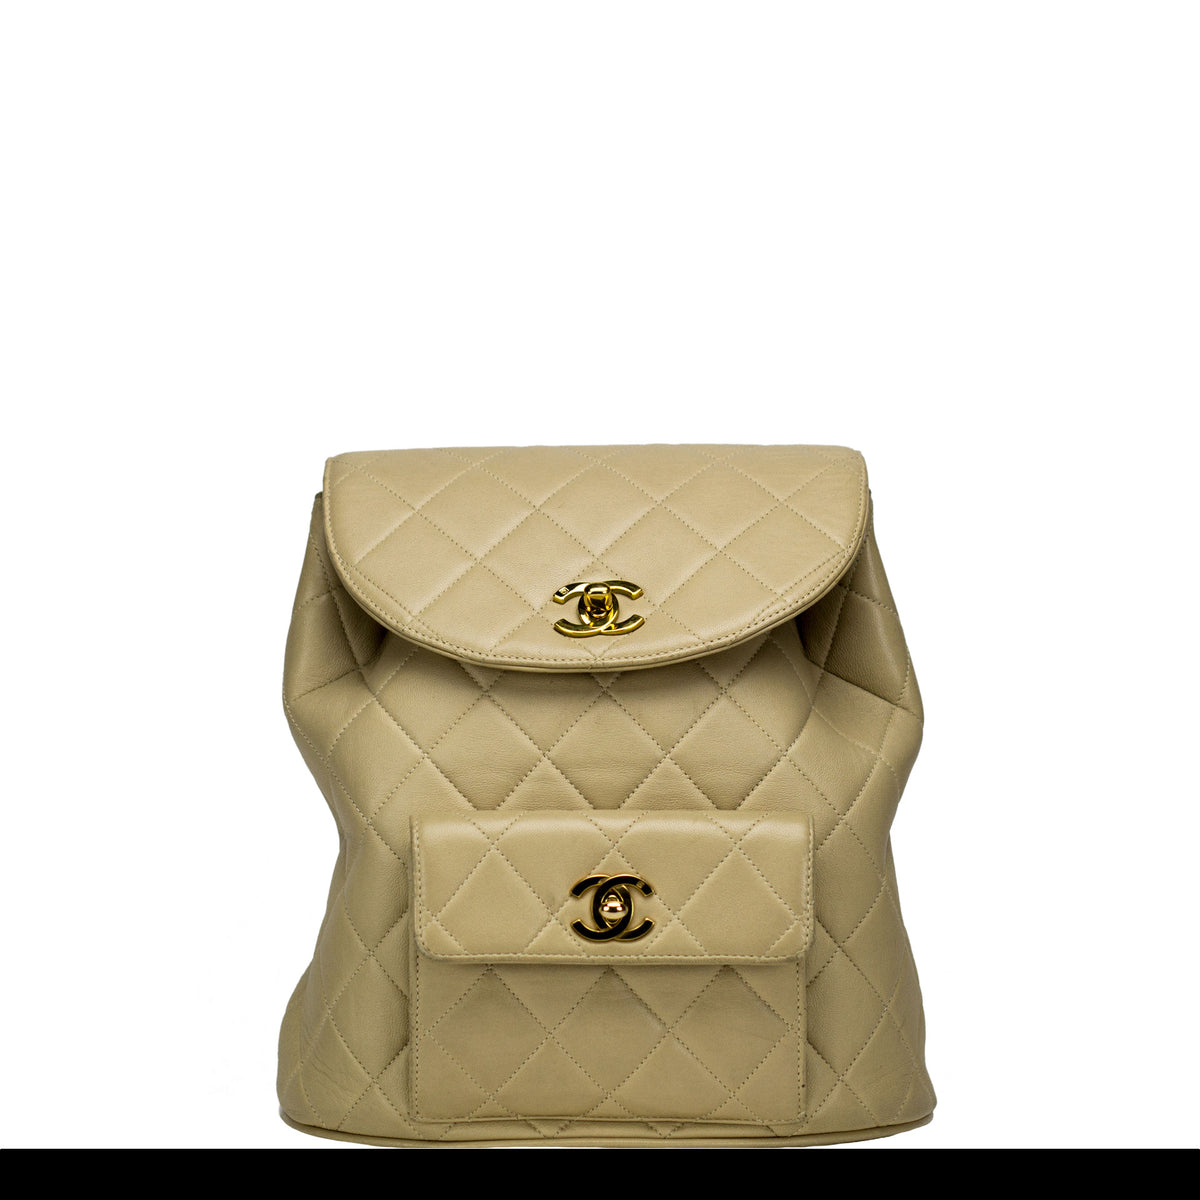 e541a23f1b9c Chanel Beige Quilted Lambskin Vintage Backpack – House of Carver